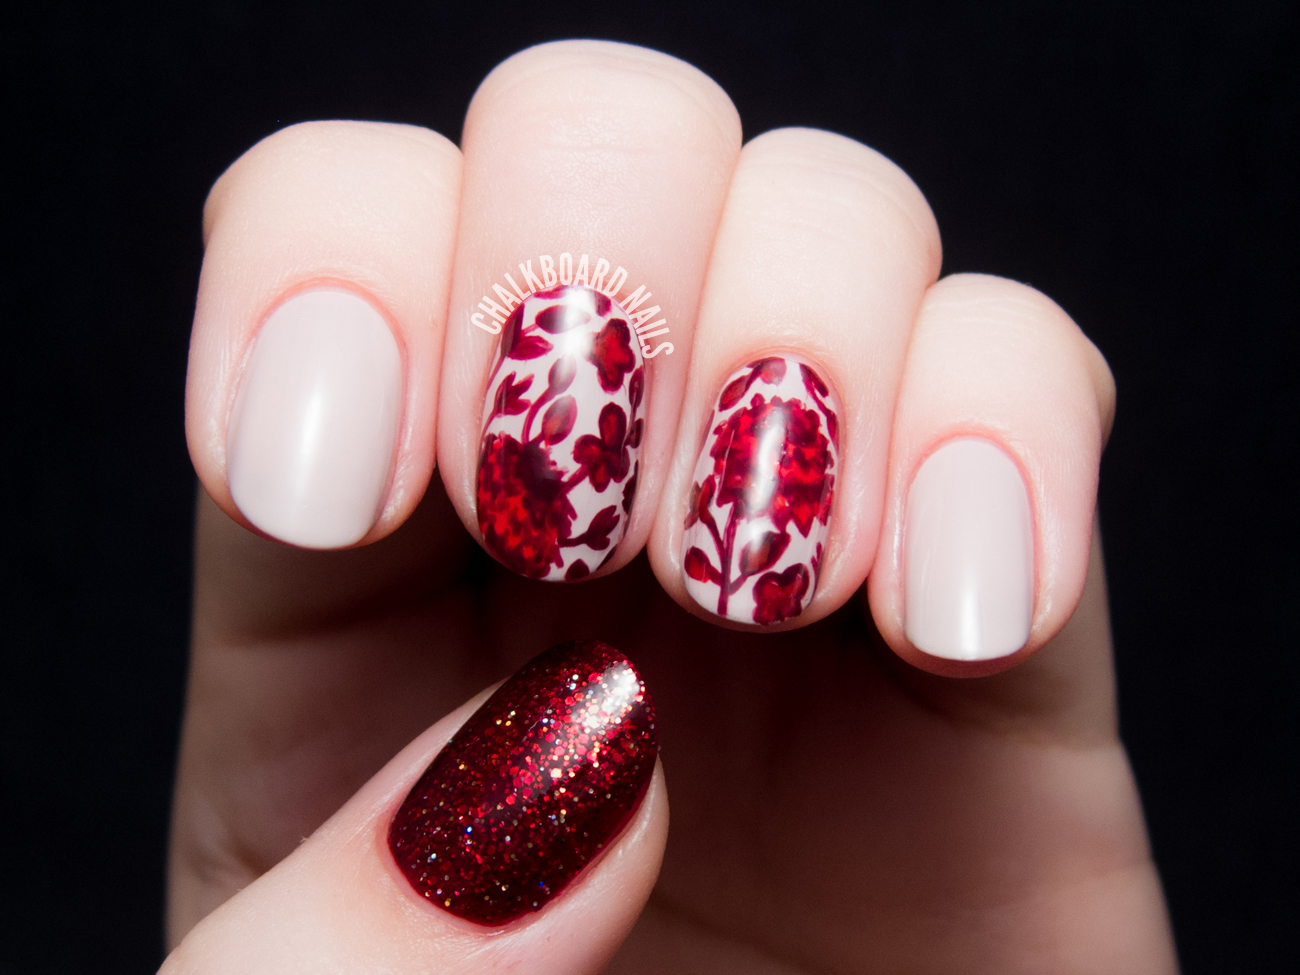 Ruby red floral by @chalkboardnails